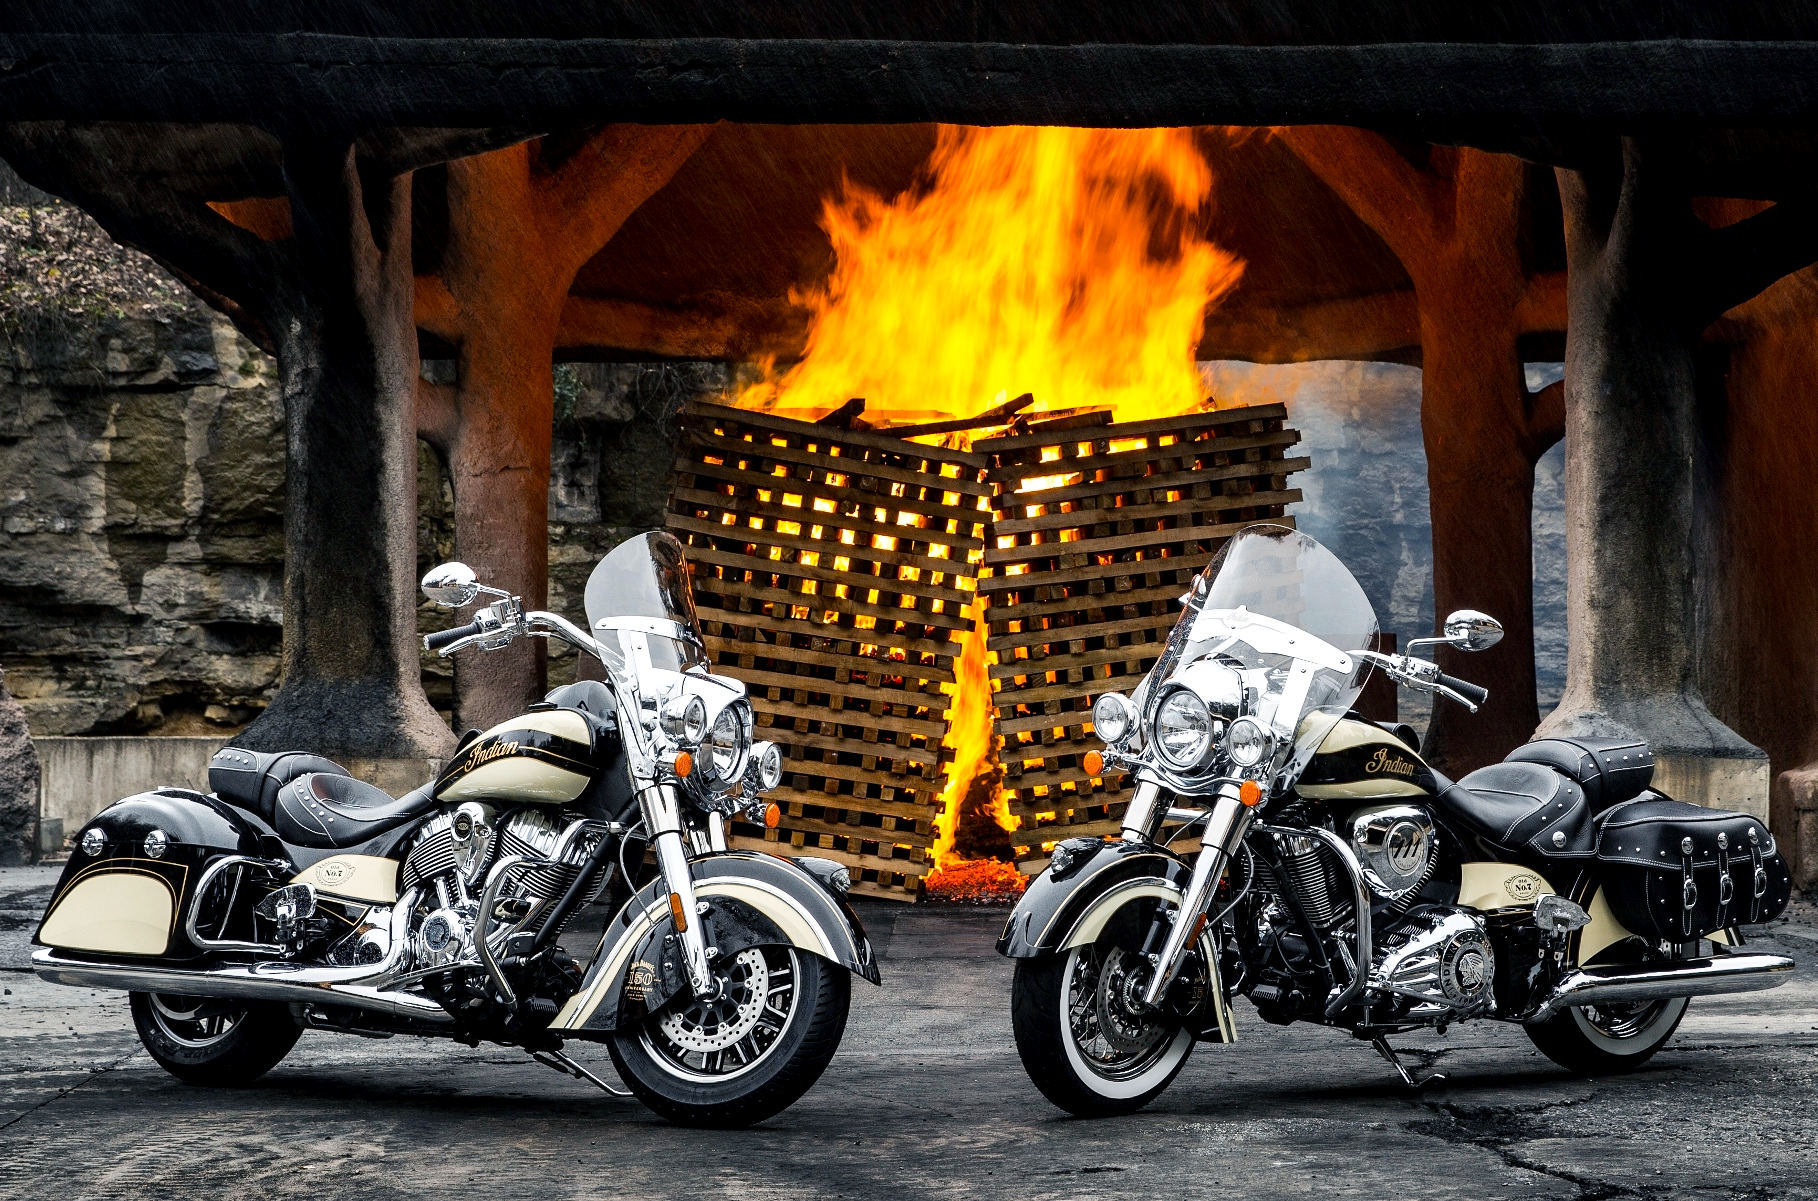 heavyweight motorcycles industry In 2017, harley-davidson's worldwide retail motorcycle sales  by 2-4% in 2018  due to a very weak us industry for new motorcycles and.